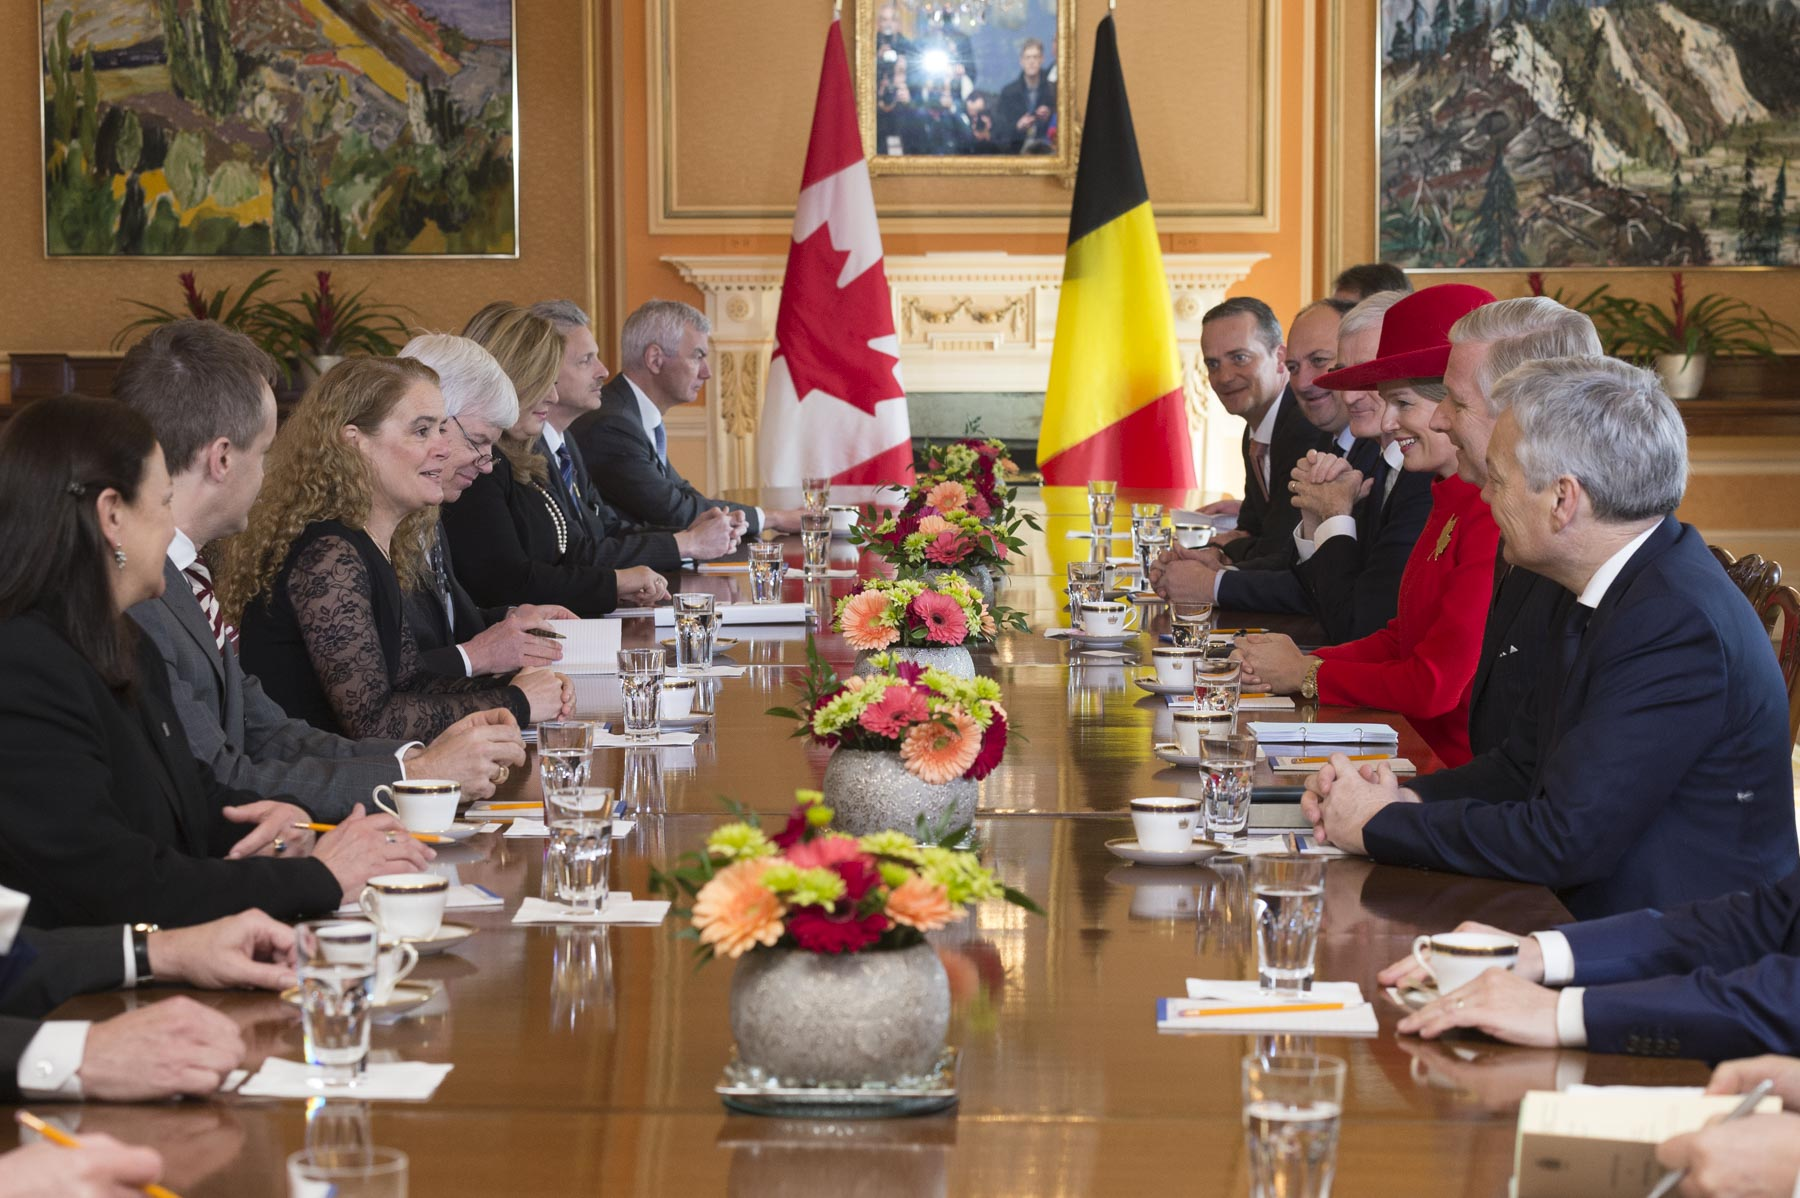 Following the ceremony, the Governor General held a meeting with Their Majesties and members of the Belgian and Canadian delegations to discuss Canada-Belgium relations.